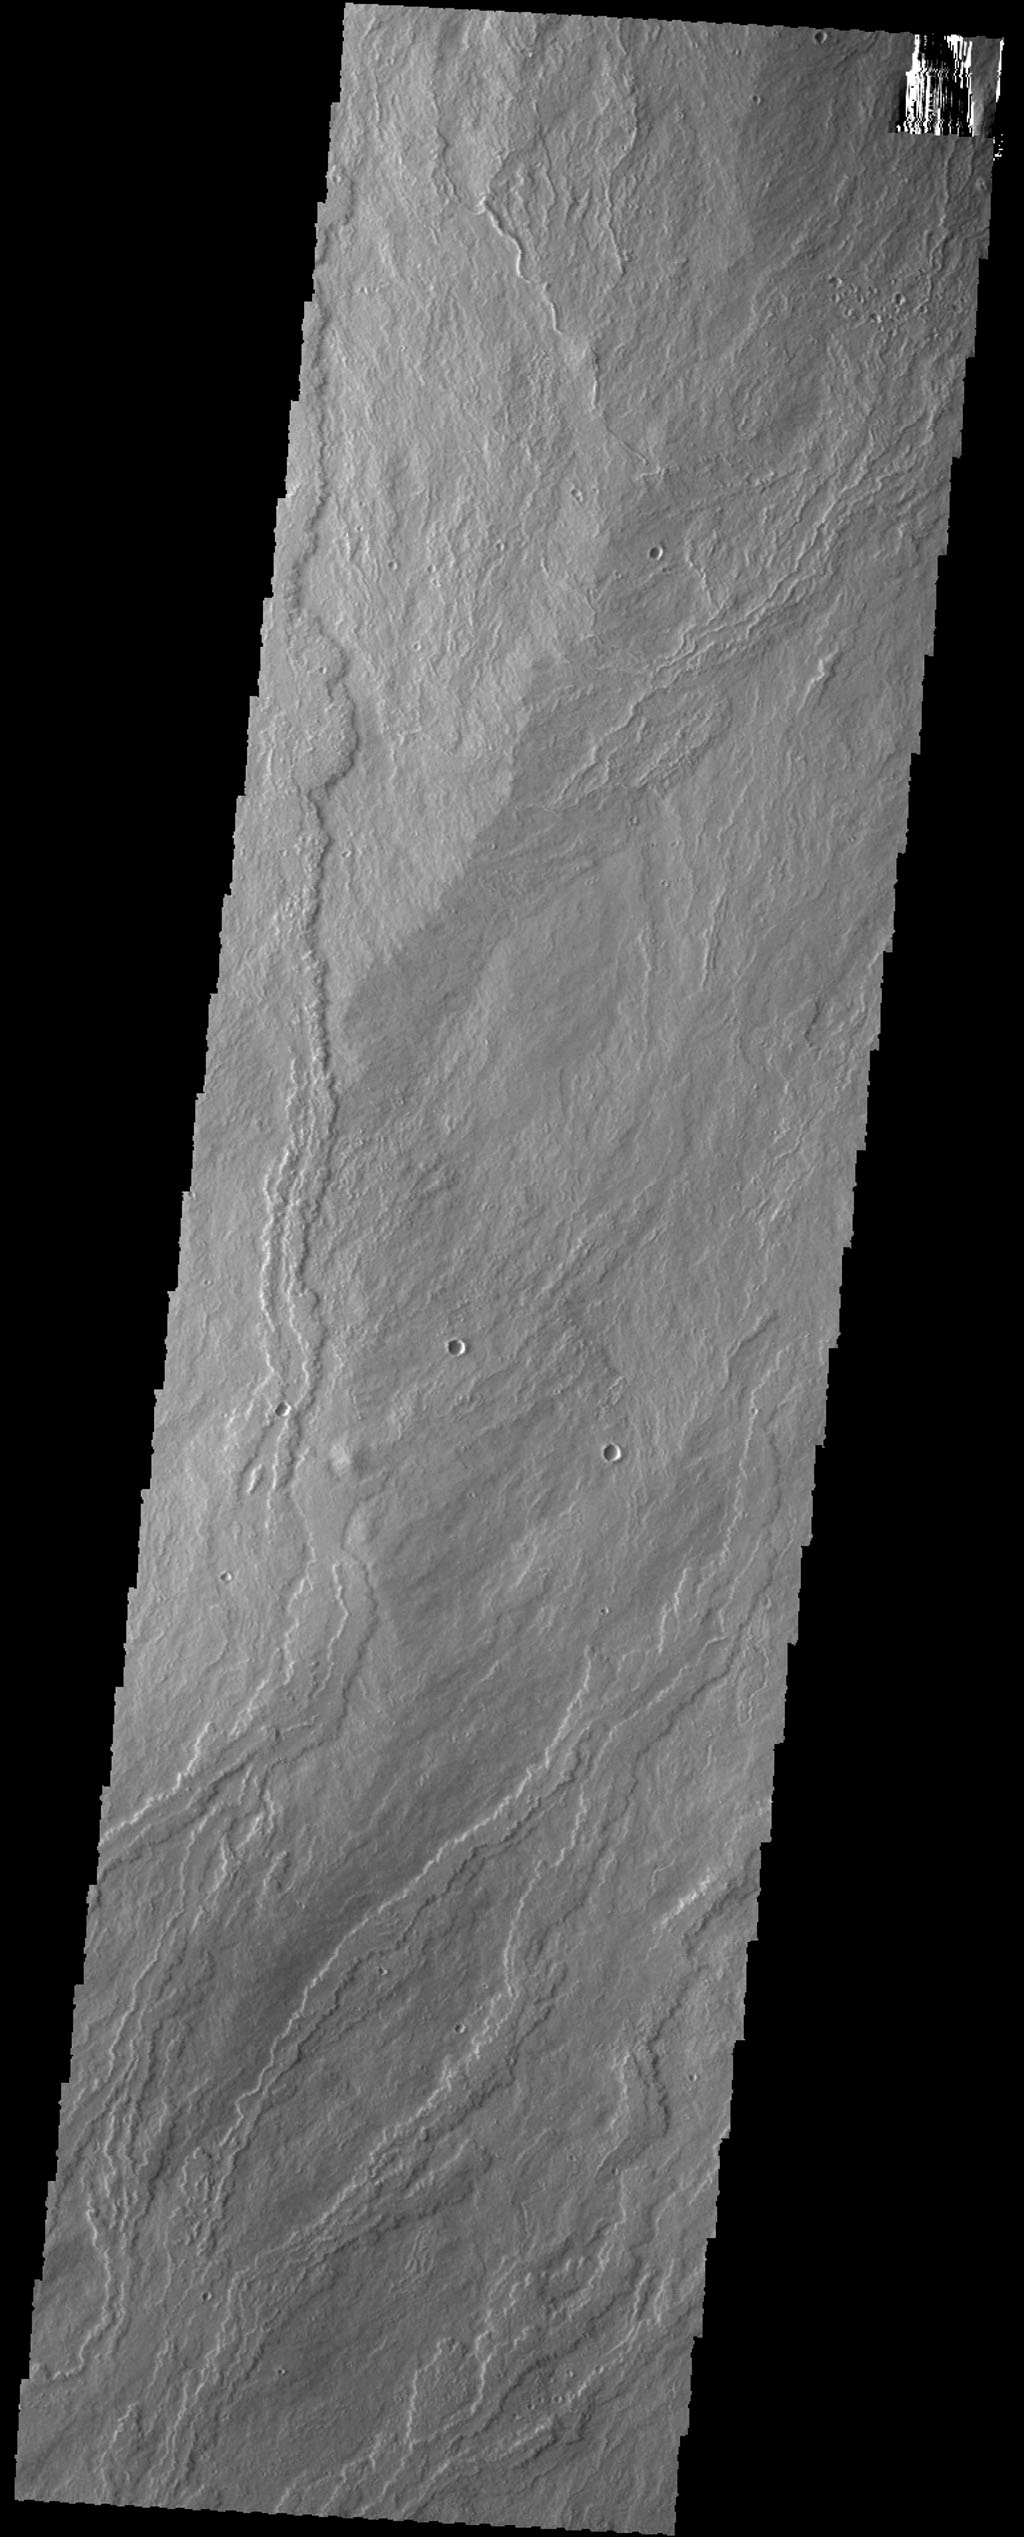 The lava flows in this image from NASA's 2001 Mars Odyssey spacecraft are part of Ascraeus Mons.